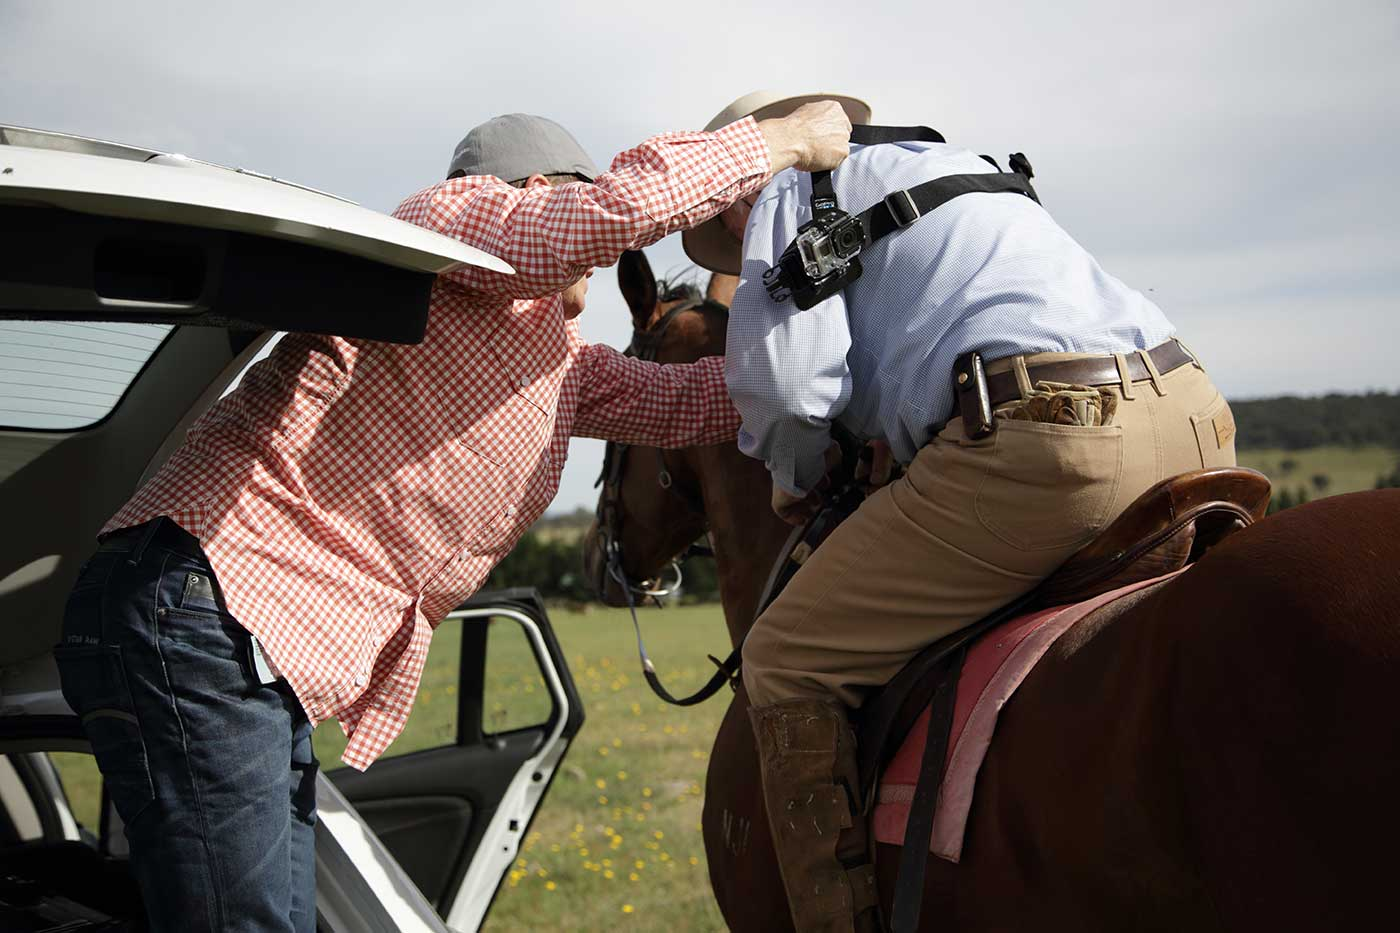 Jeremy Lucas assisting Neale Lavis to mount the Go Pro, December 2013. - click to view larger image